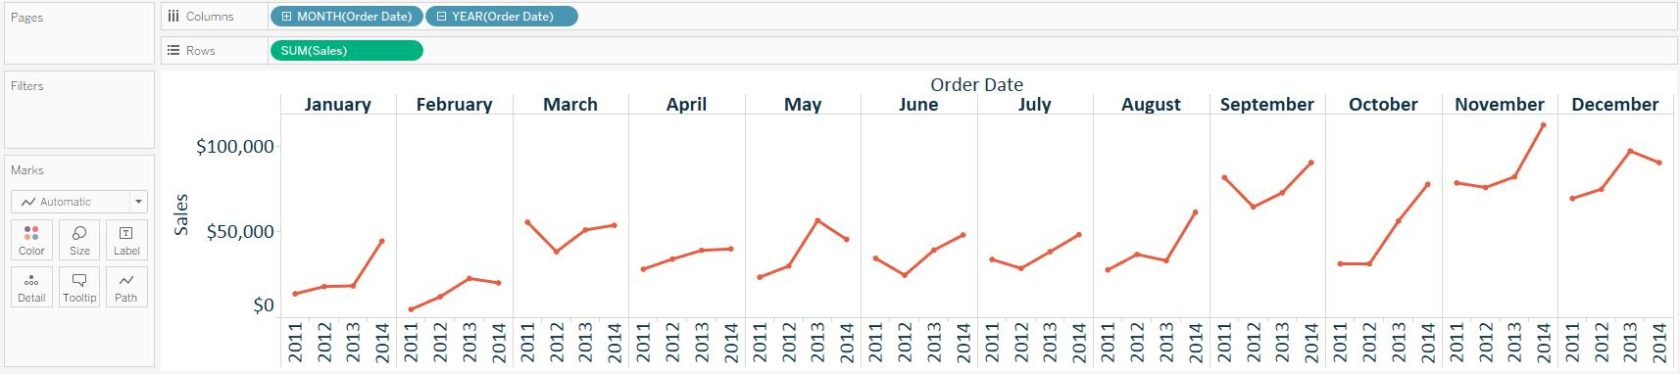 Tableau Line Graph by Month and Year